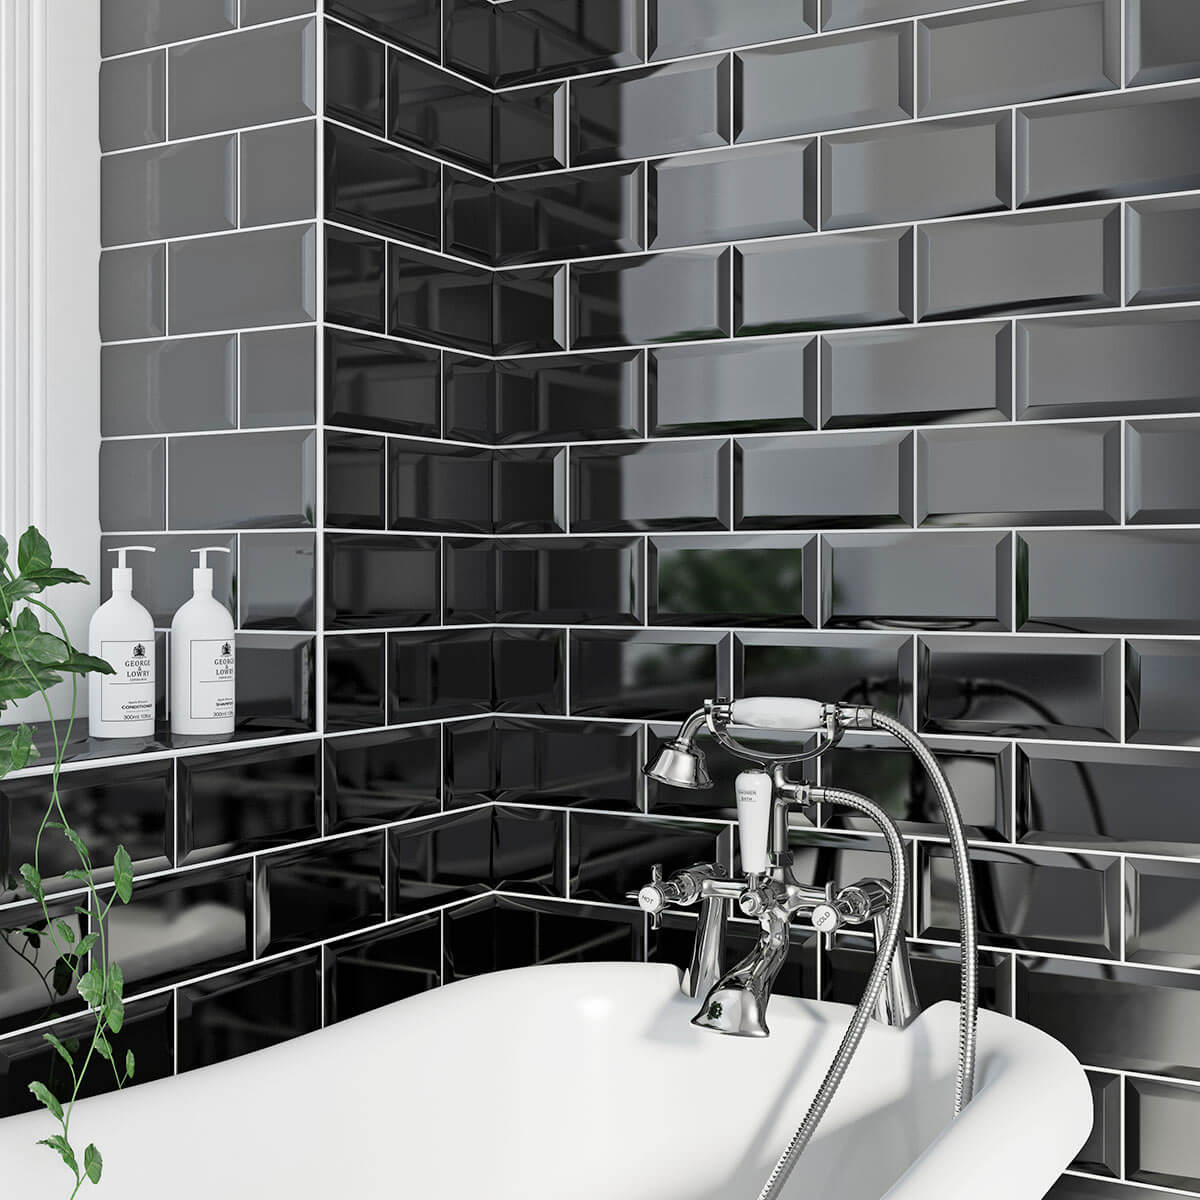 Black Gloss Kitchen Wall Tiles: PARASKEVOPOULOS